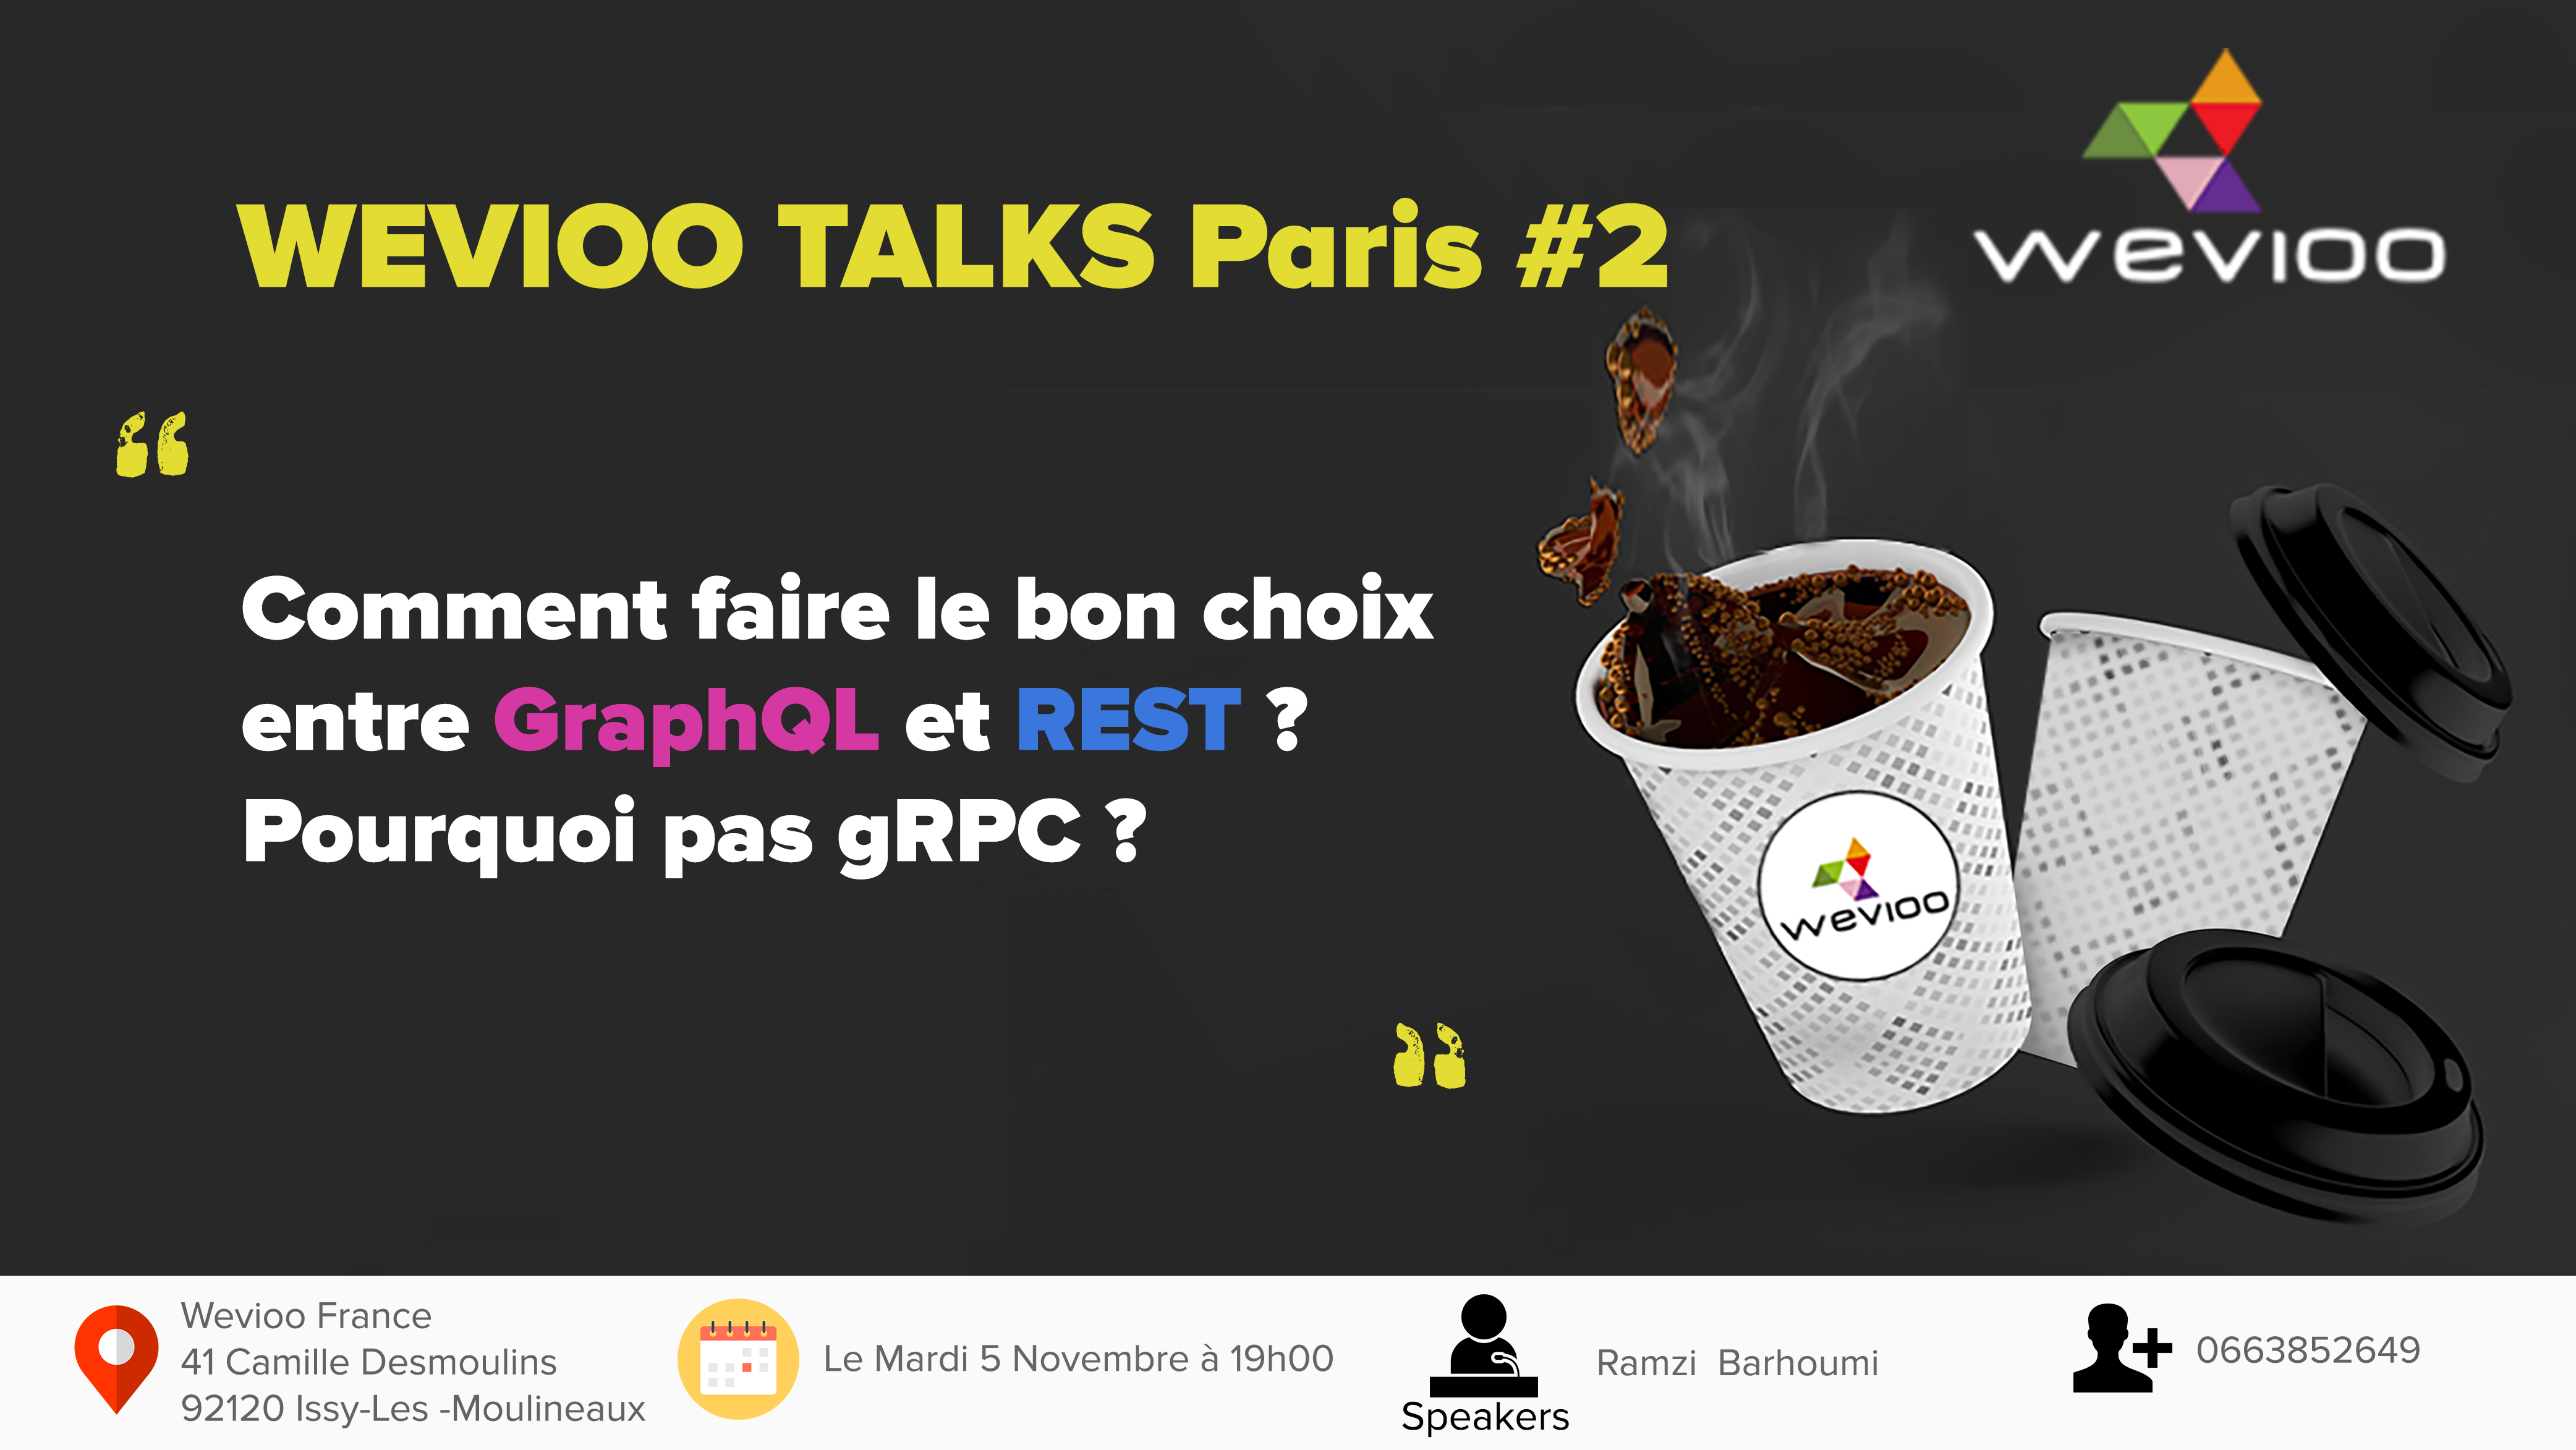 [ MEET UP] WEVIOO talks Paris #2 GRAPHQL REST GRPC